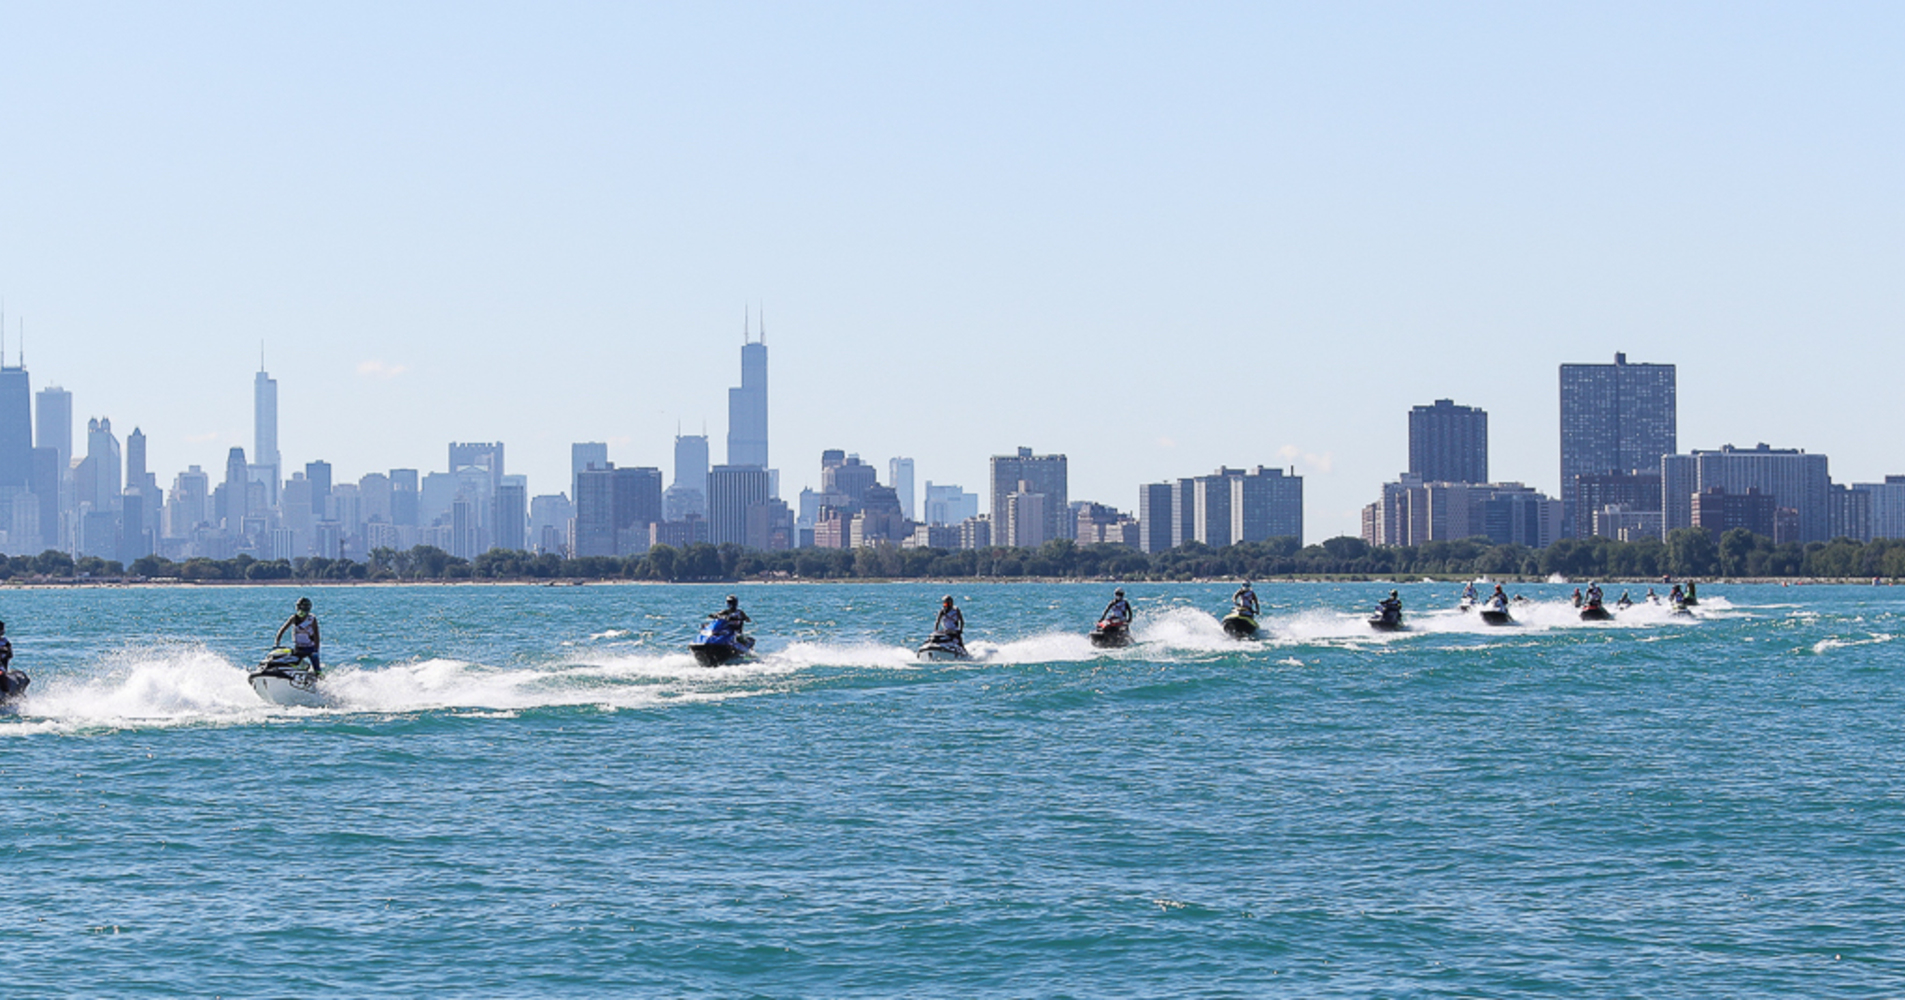 Chicago will once again play host to AquaX and IJSBA National Championships